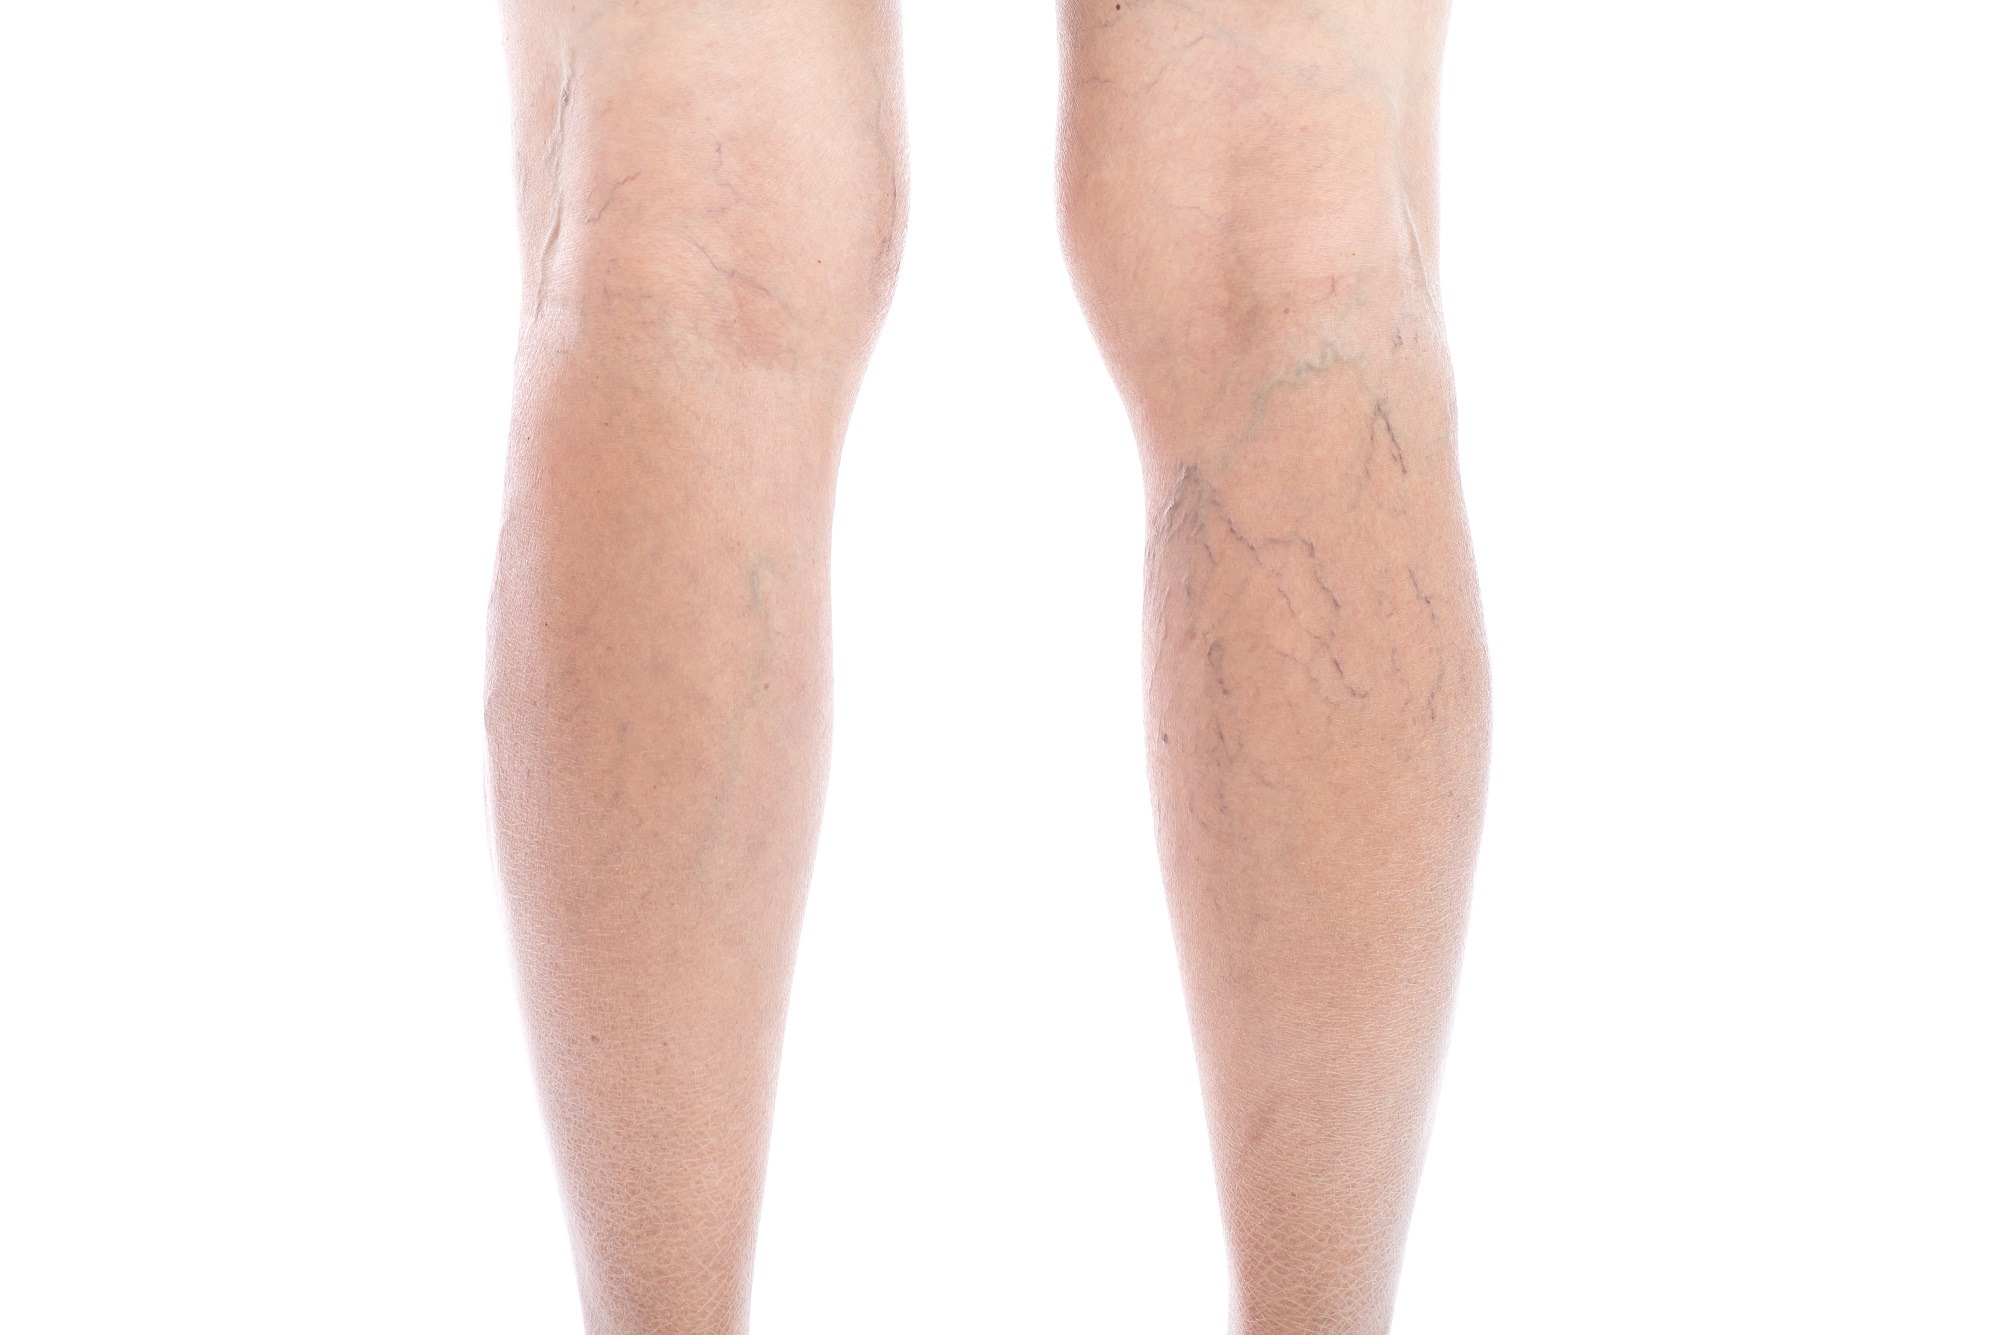 a woman's legs with varicose veins - sclerotherapy